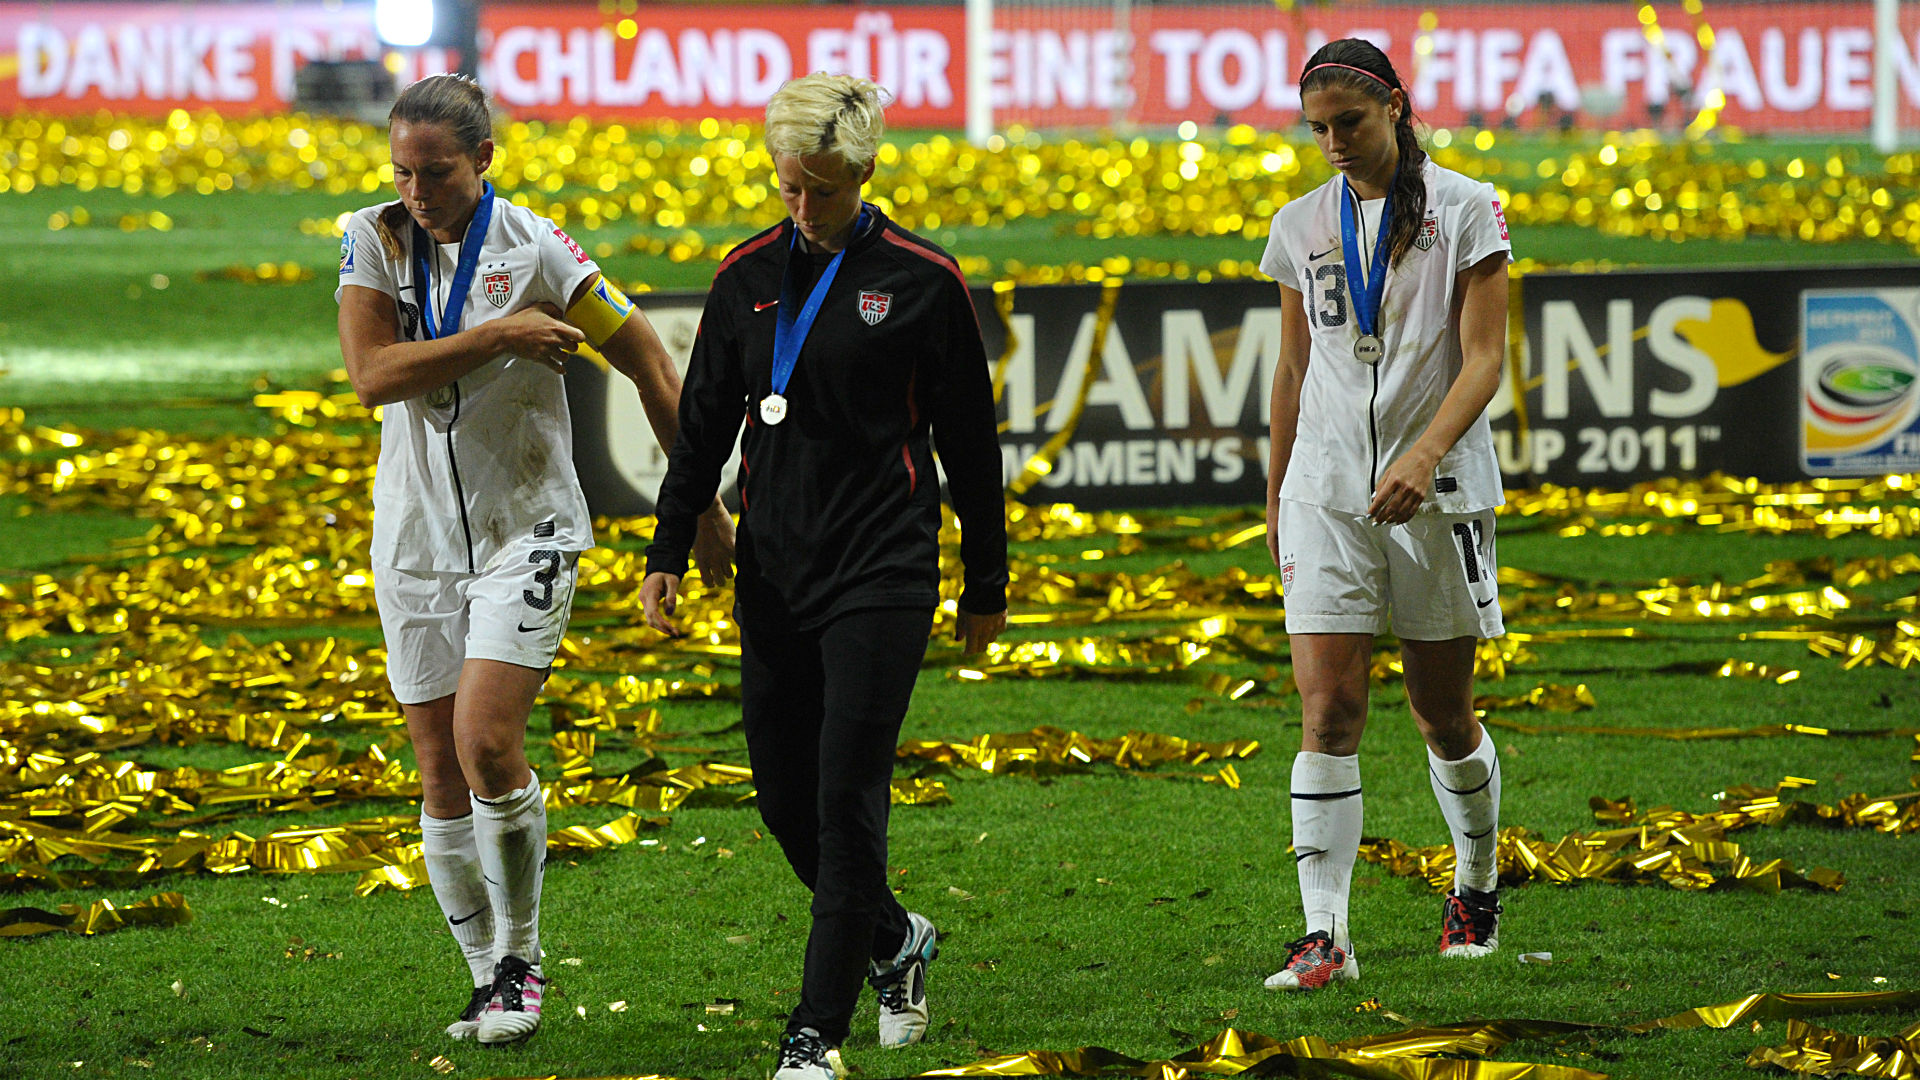 Womens world cup 2015 usa loss to japan in 2011 still stings womens world cup 2015 usa loss to japan in 2011 still stings soccer sporting news publicscrutiny Image collections